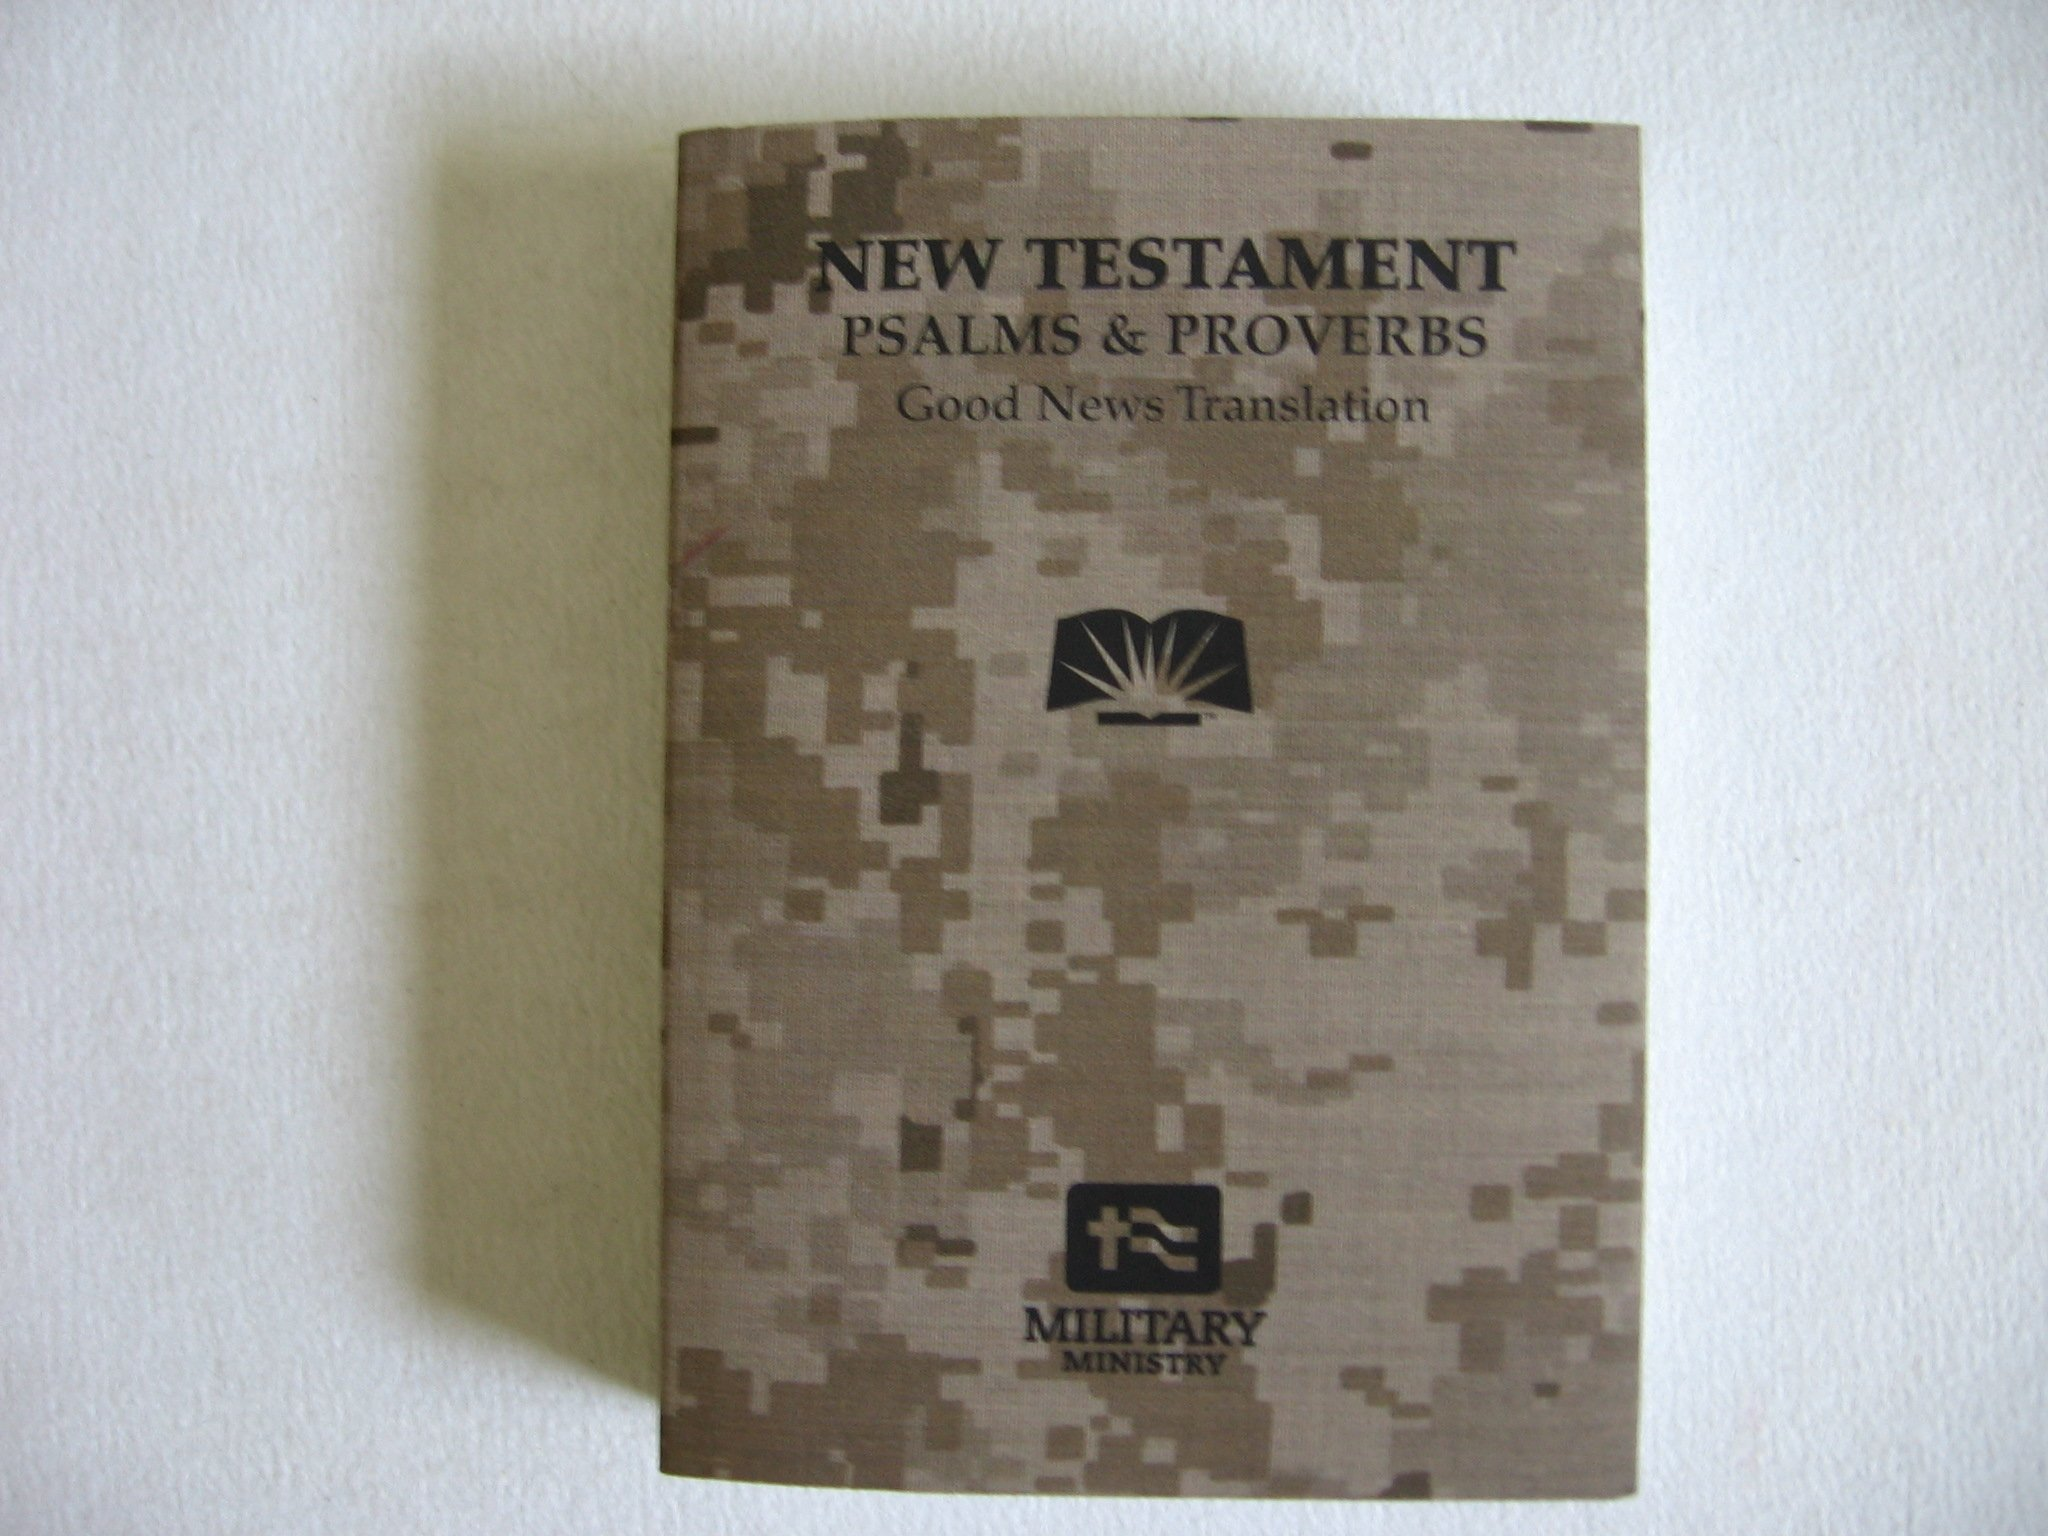 New Testament with Psalms & Proverbs, Good News Translation (Miniature, By Military Ministry, Campus Crusade for Christ Int'l)